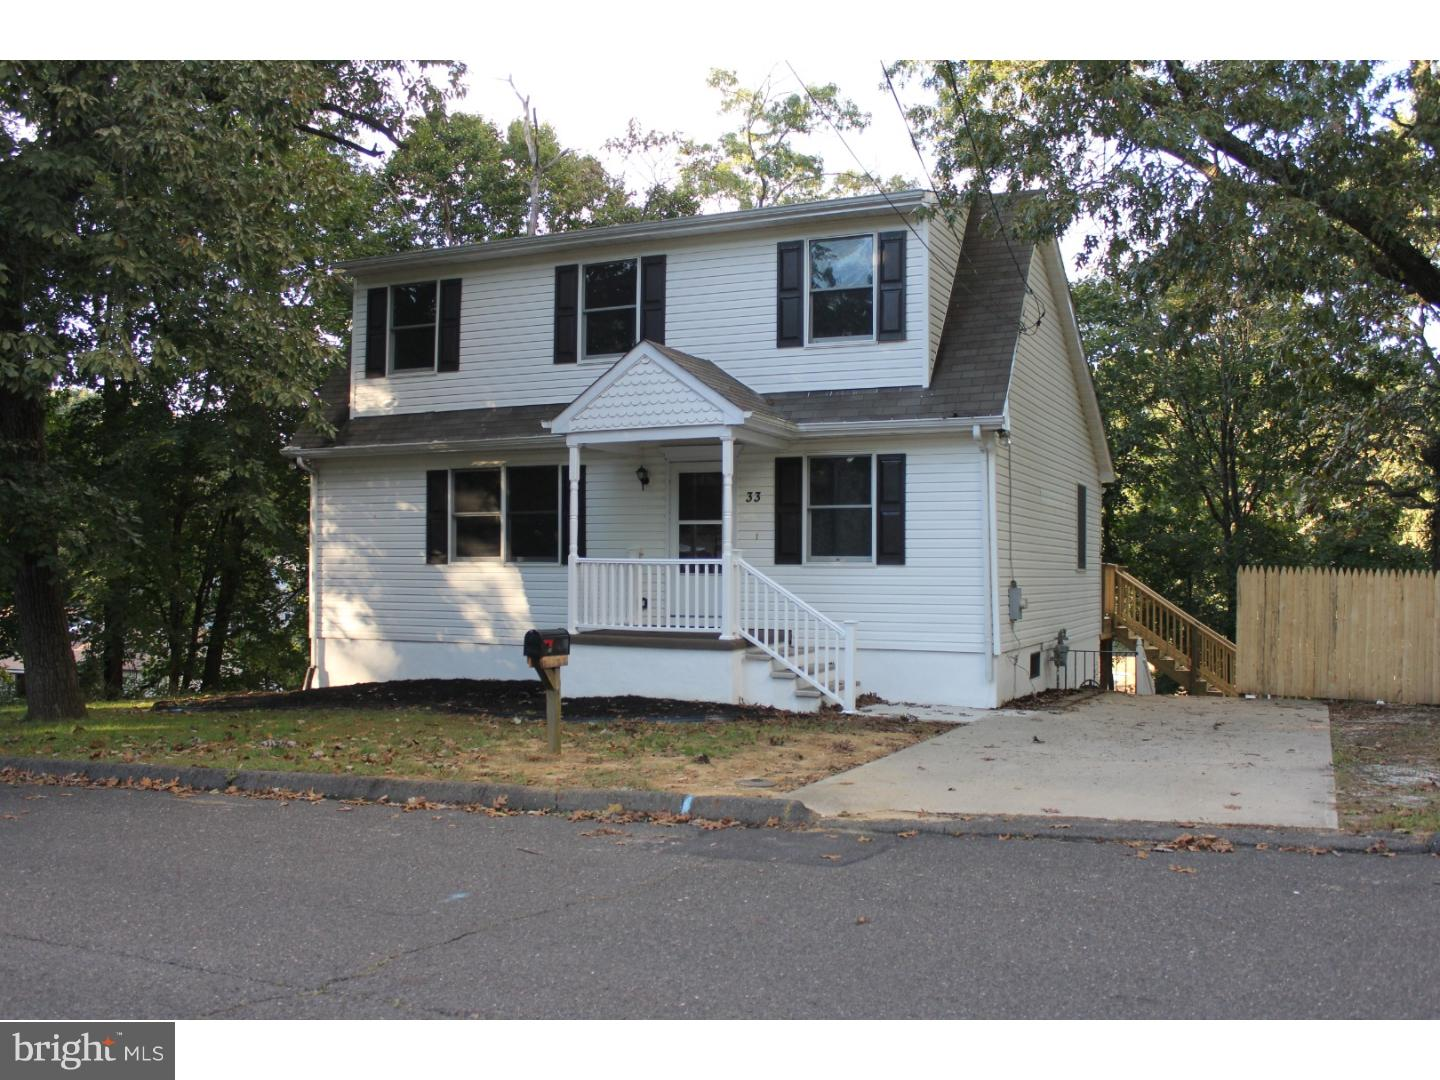 Single Family Home for Sale at 33 W 2ND Avenue Pine Hill, New Jersey 08021 United States